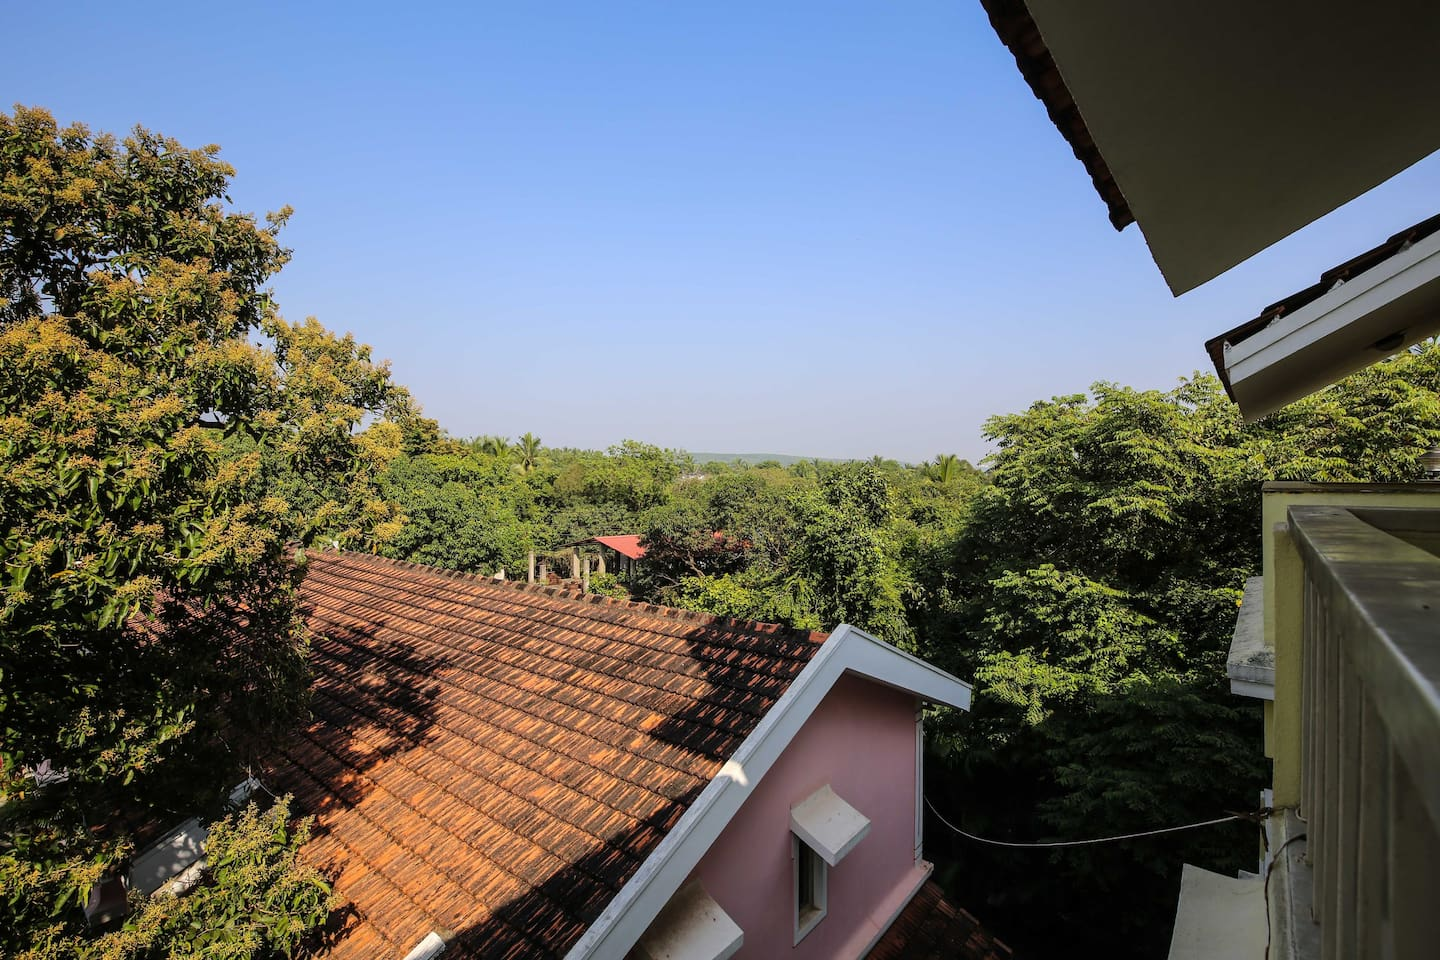 View from the balcony of the surrounding trees & hills